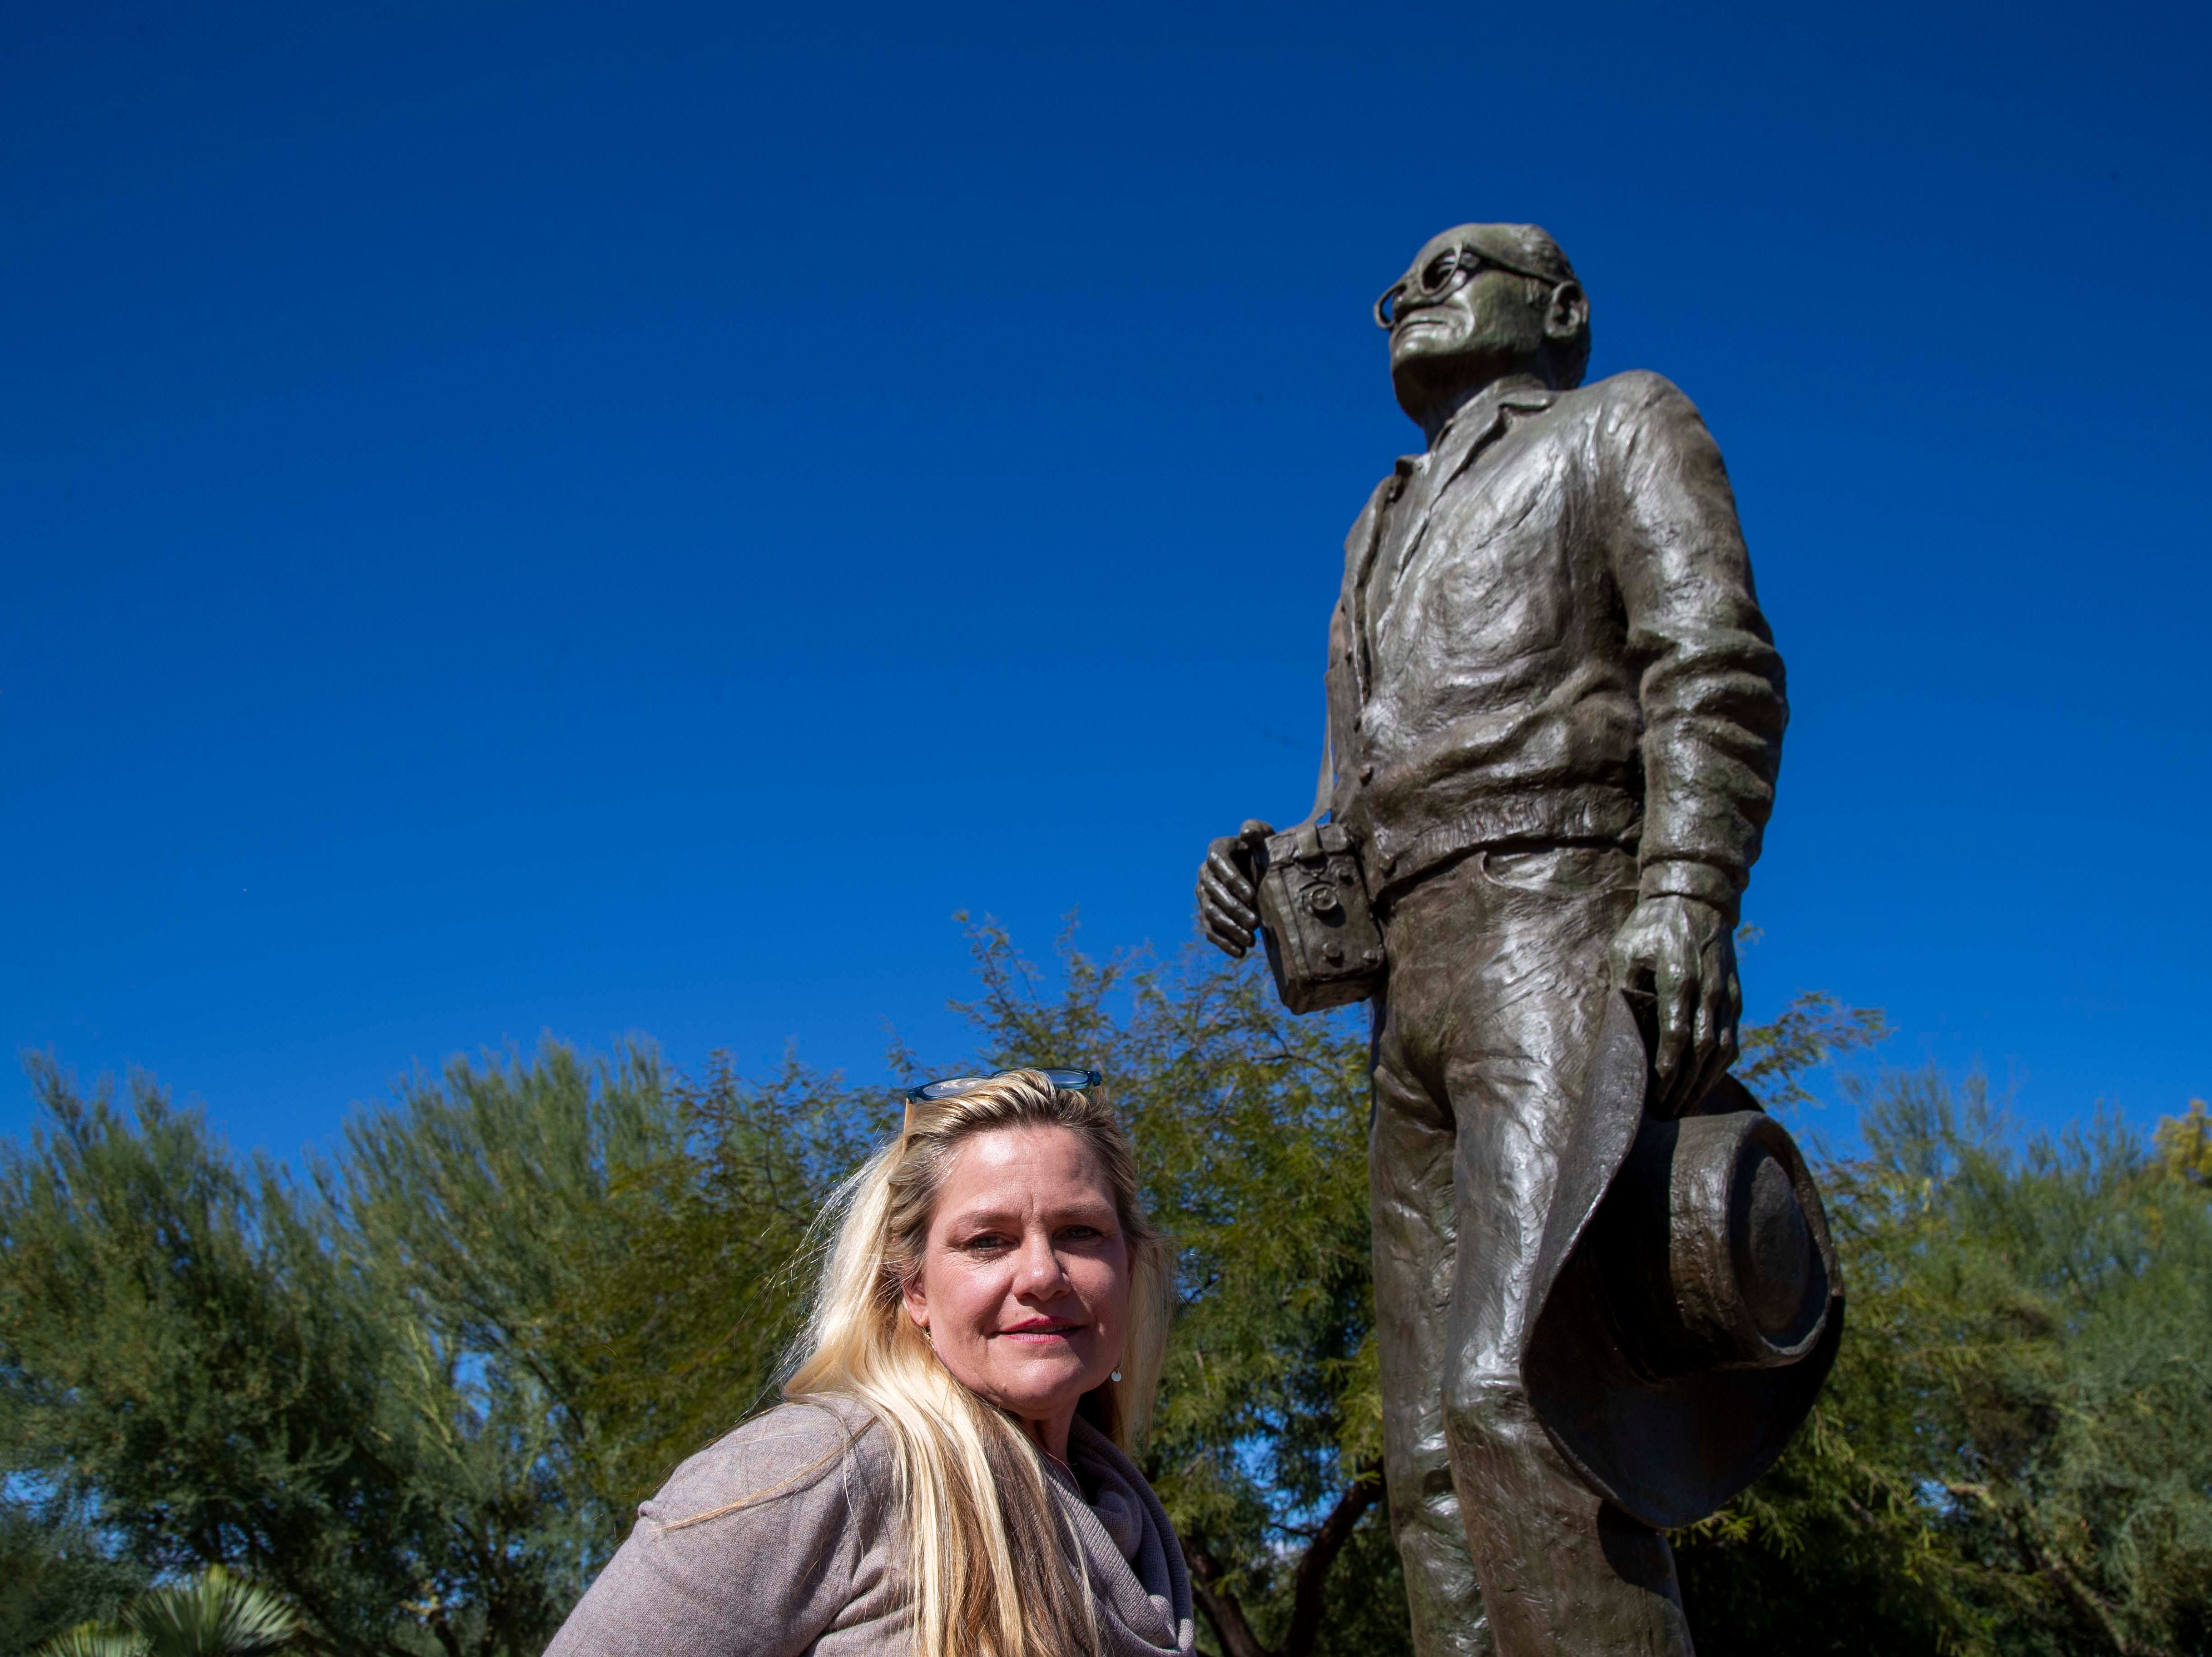 Portrait of Alison Goldwater, a granddaughter of Barry Goldwater stands on front of bronze statue in Paradise Valley, Az.